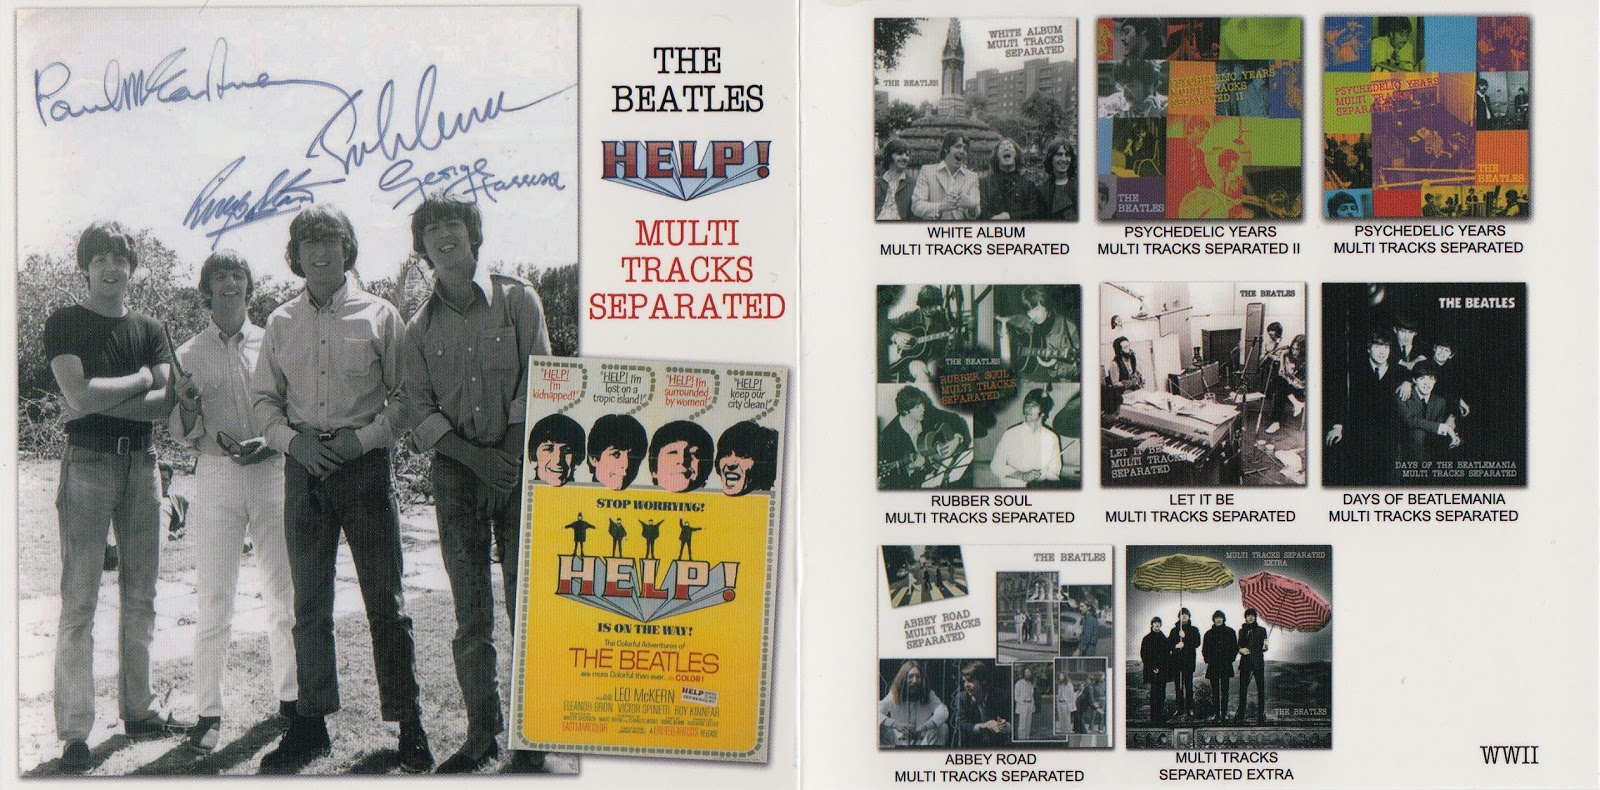 RELIQUARY: Beatles, The - Help! Multi Tracks Separated (WWII